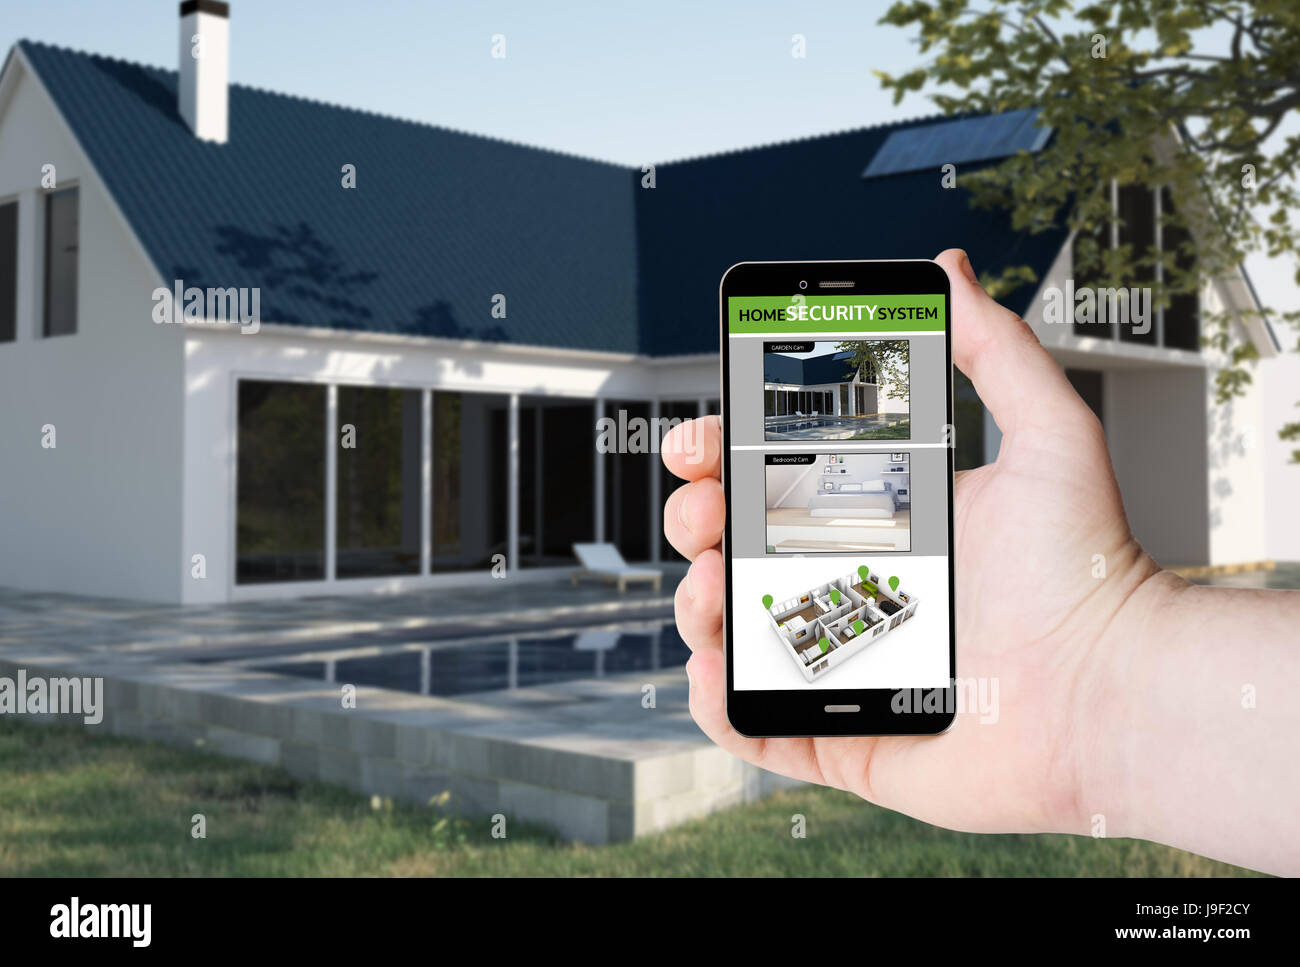 Hand hold a phone with security camera control app on a